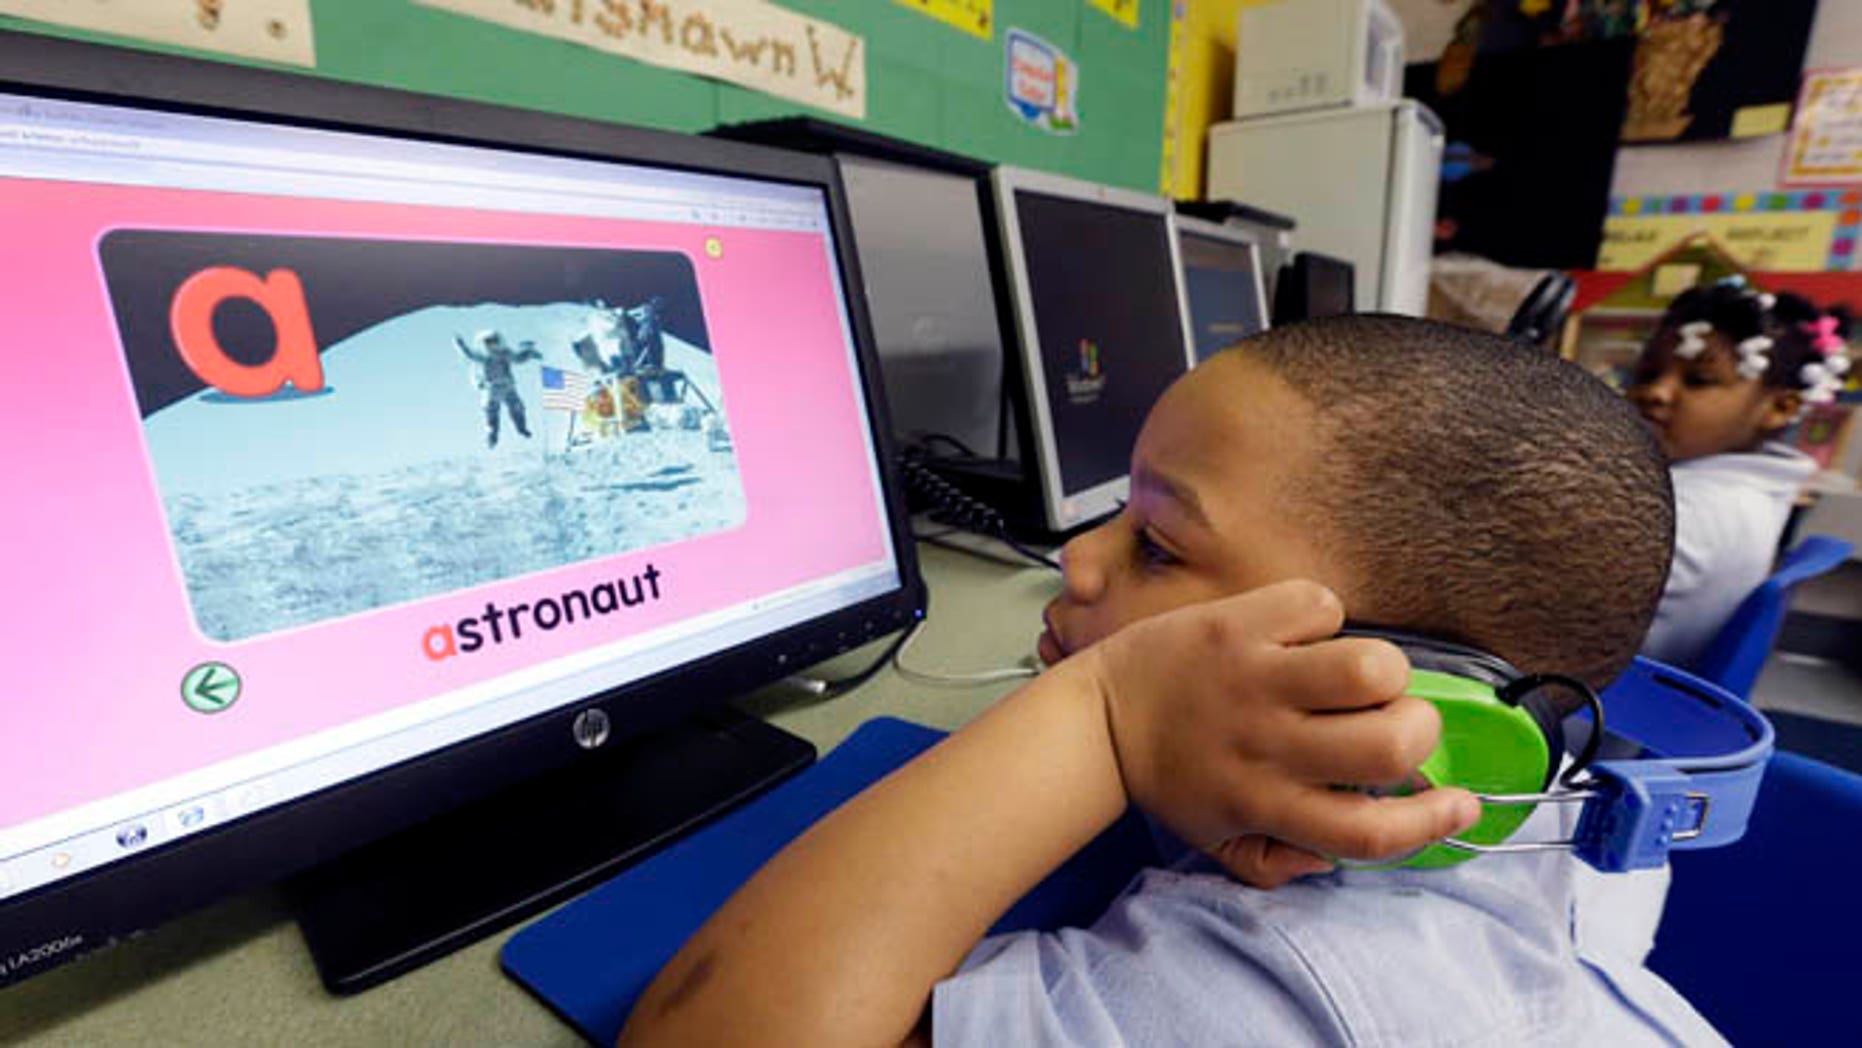 Friday, March 1, 2013: In this photo, Jason Hayes works on a computer in his prekindergarten class at a public school in Buffalo, N.Y. President Barack Obama's proposal to expand access to preschool is seen as a way to close the achievement gap for poor and minority students, improve high school graduation rates and ultimately strengthen the workforce.